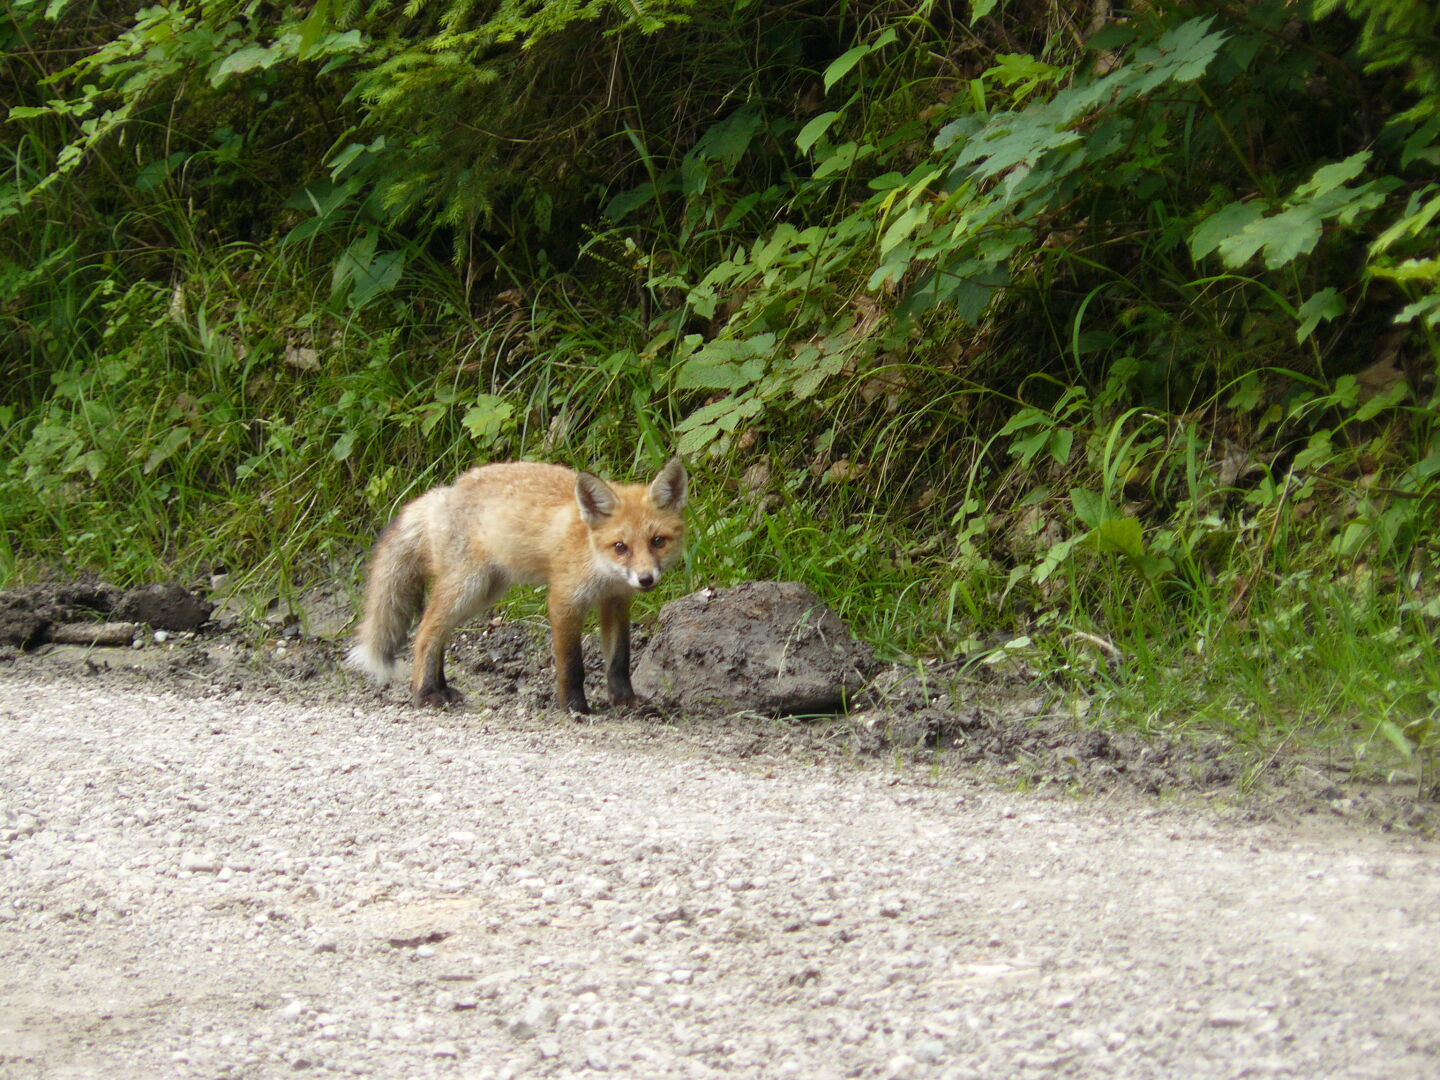 A small fox, a rare sight though they are said to be very common animals.